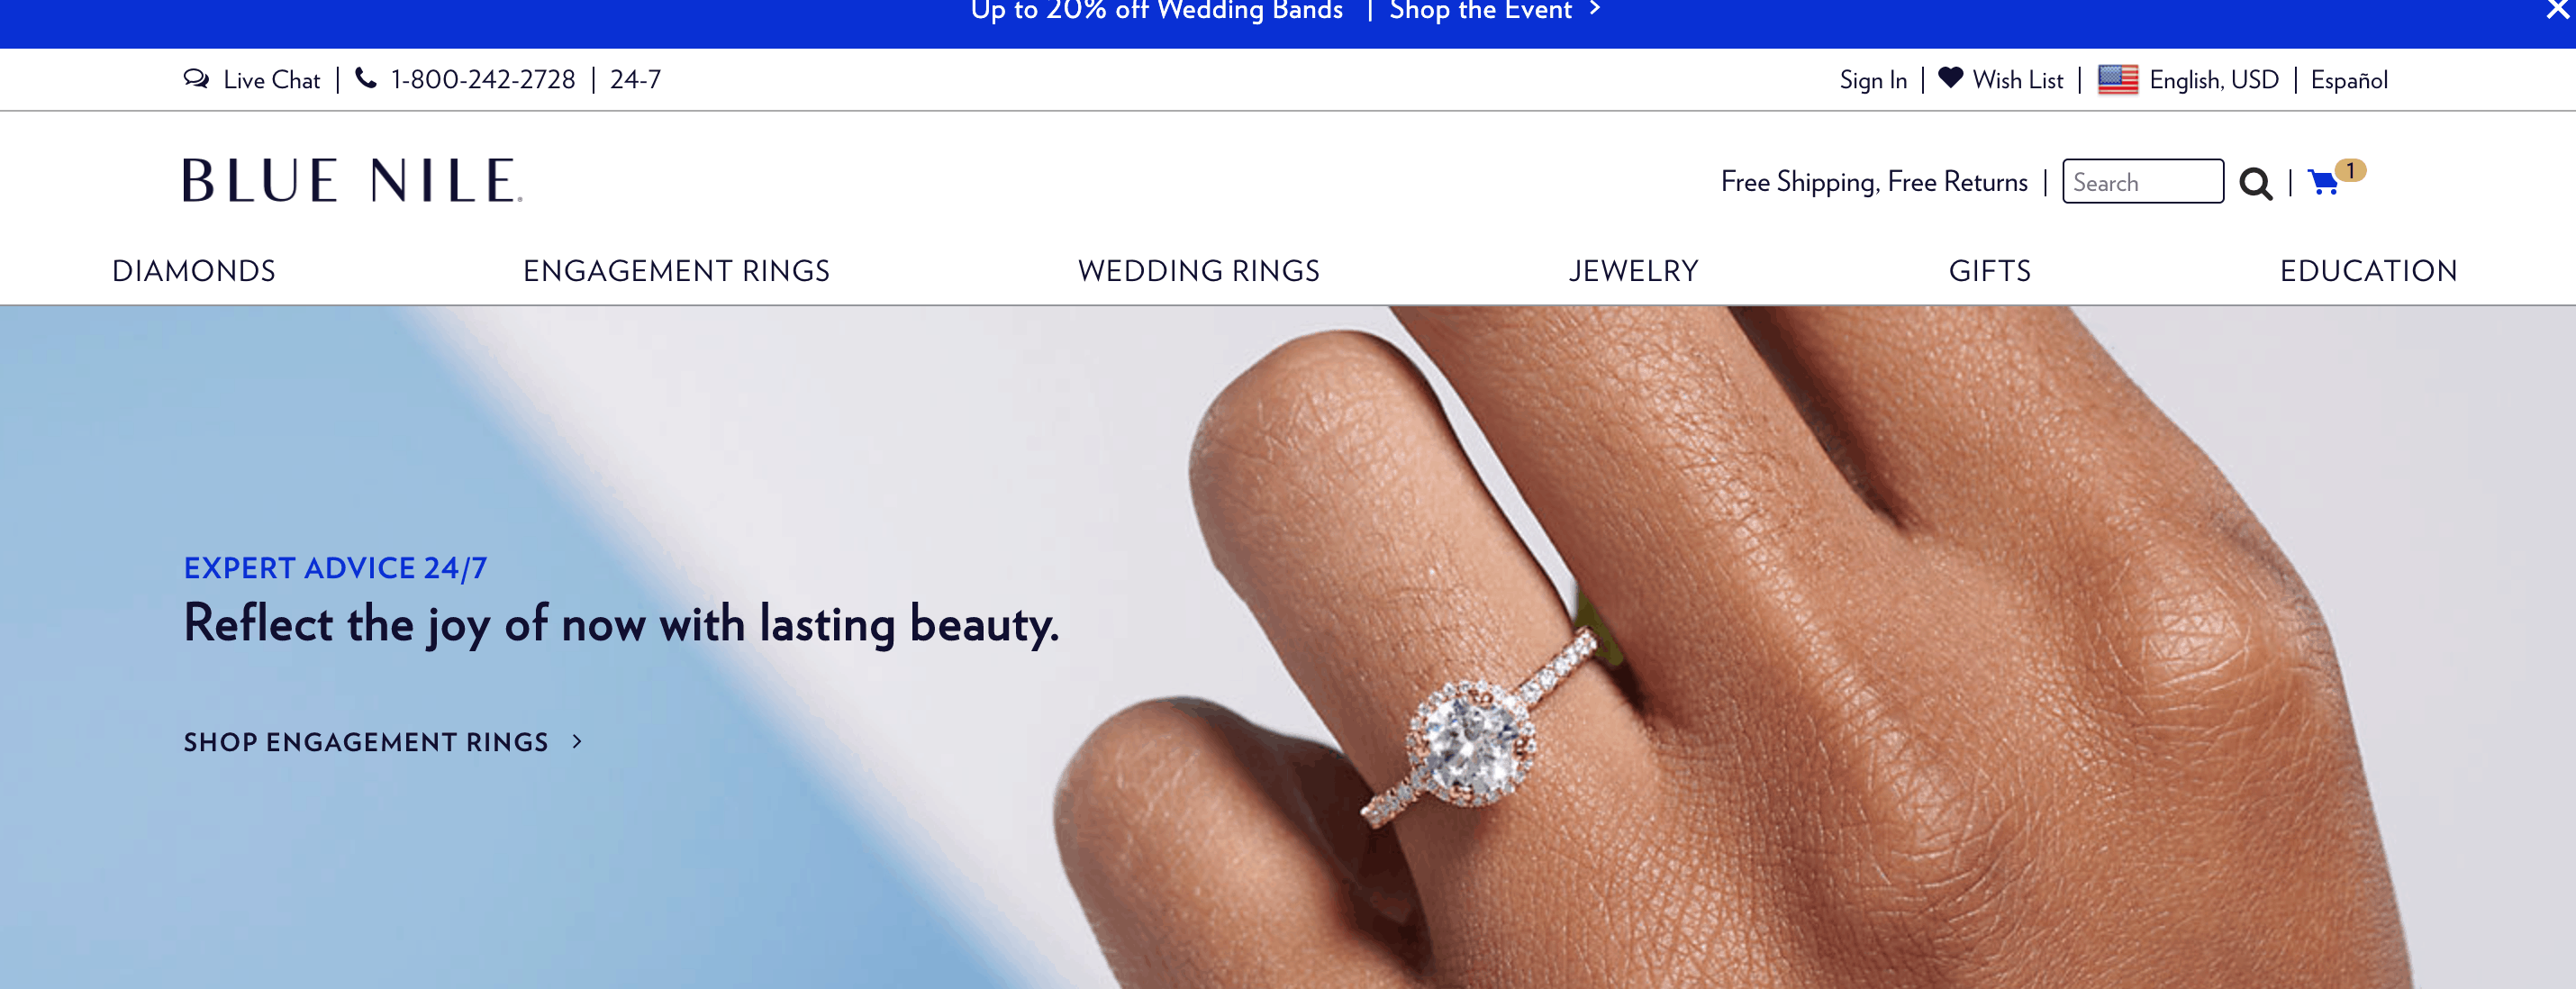 blue nile online diamond earrings store